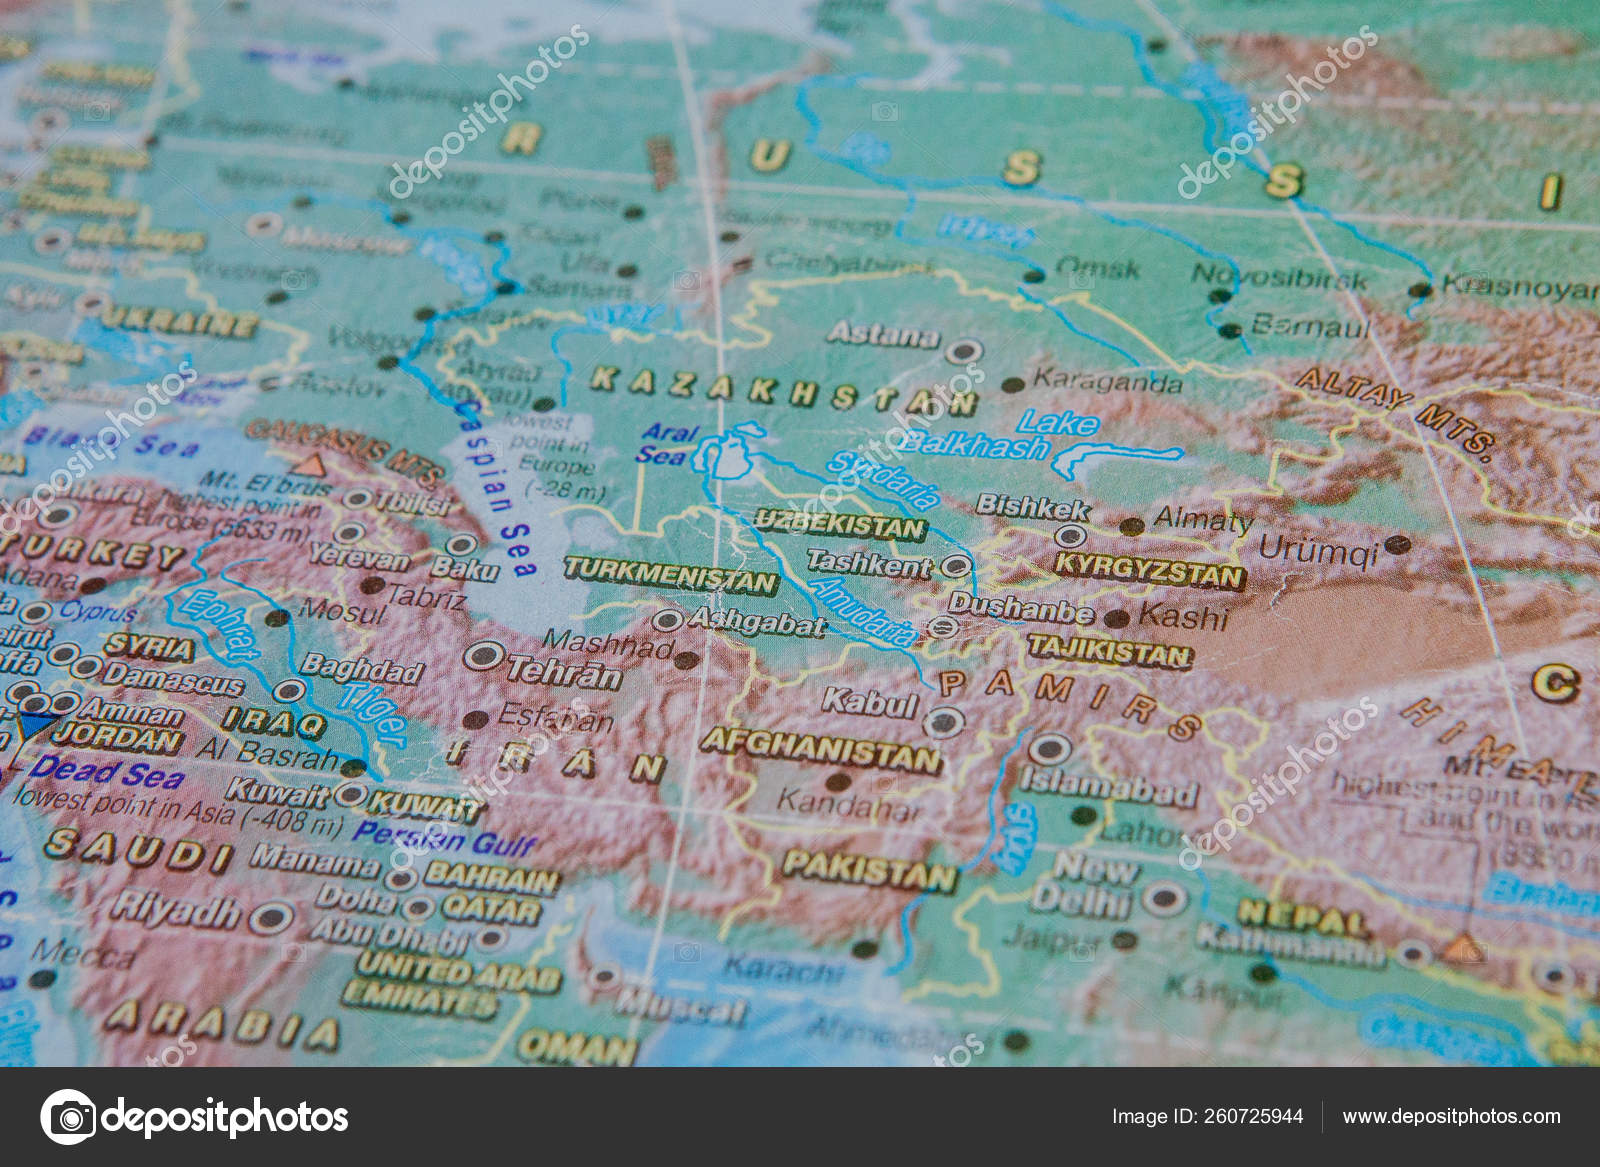 Picture of: Turkmenistan Uzbekistan Kyrgyzstan In Close Up On The Map Focus On The Name Of Country Vignetting Effect Stock Photo C Volody100 Ukr Net 260725944